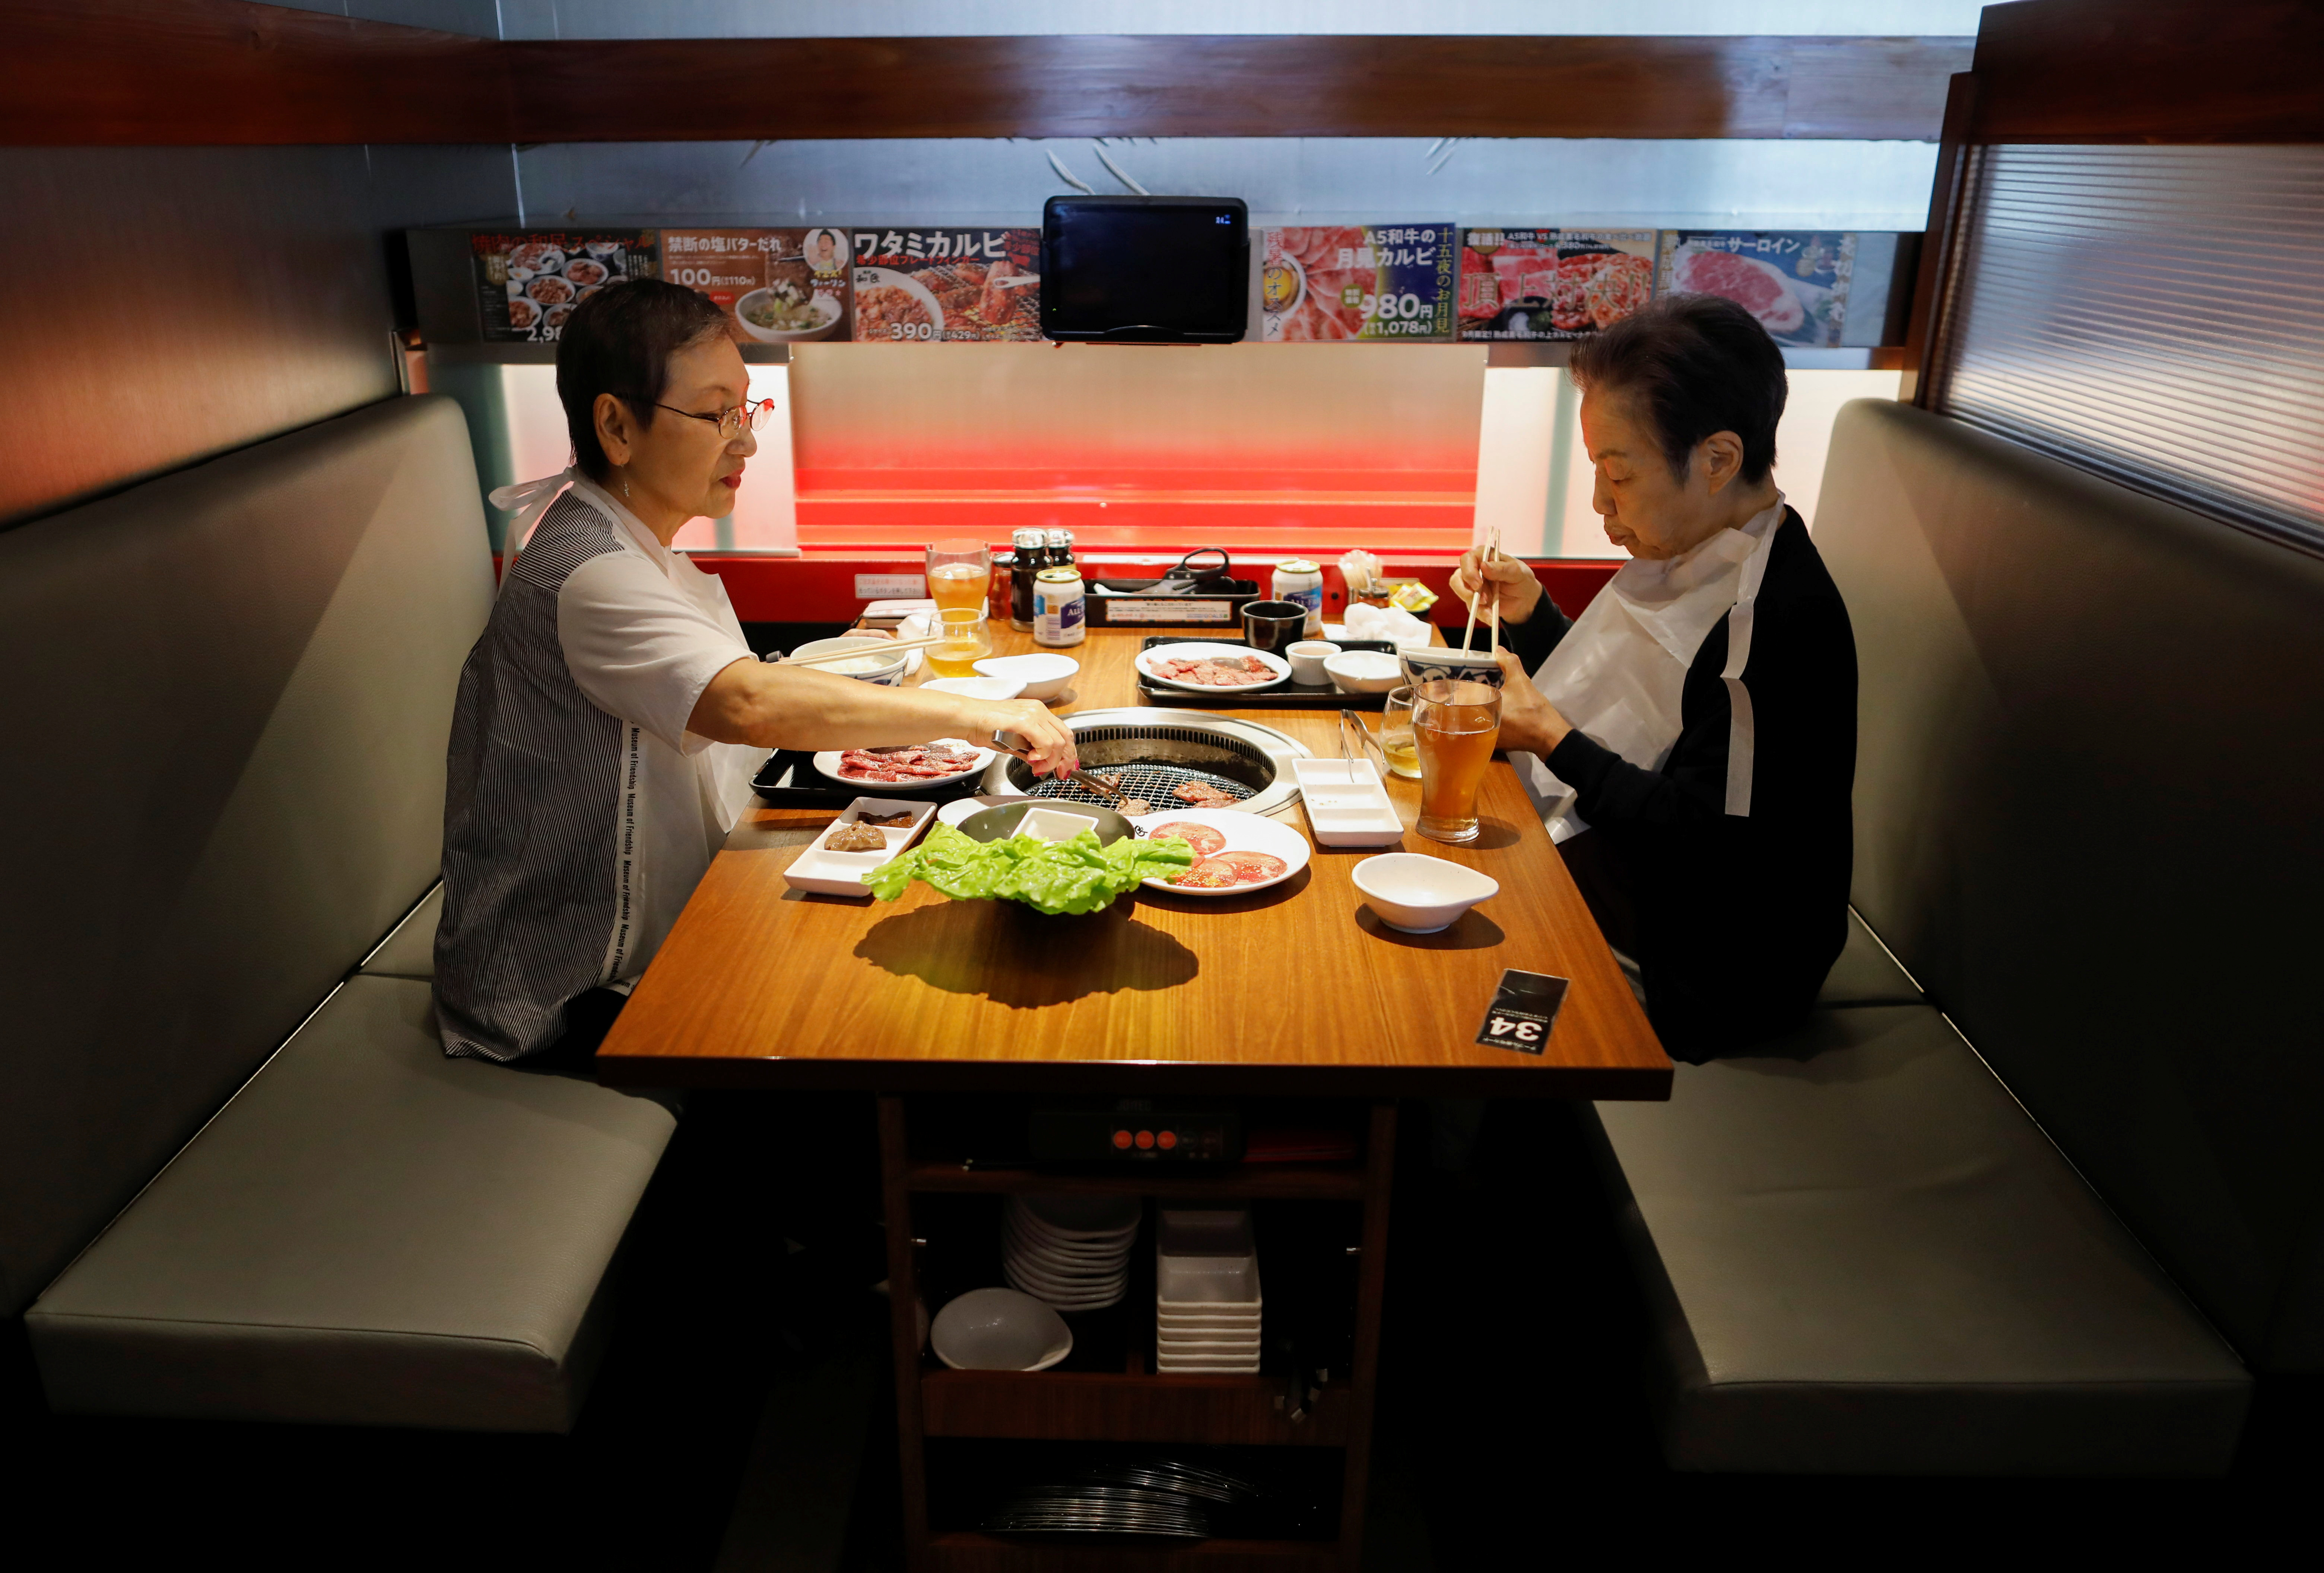 Customers have lunch at the yakiniku barbecue restaurant named 'Yakiniku no Watami', operated by Watami Co., in Tokyo, Japan September 17, 2021. Picture taken September 17, 2021.  REUTERS/Issei Kato